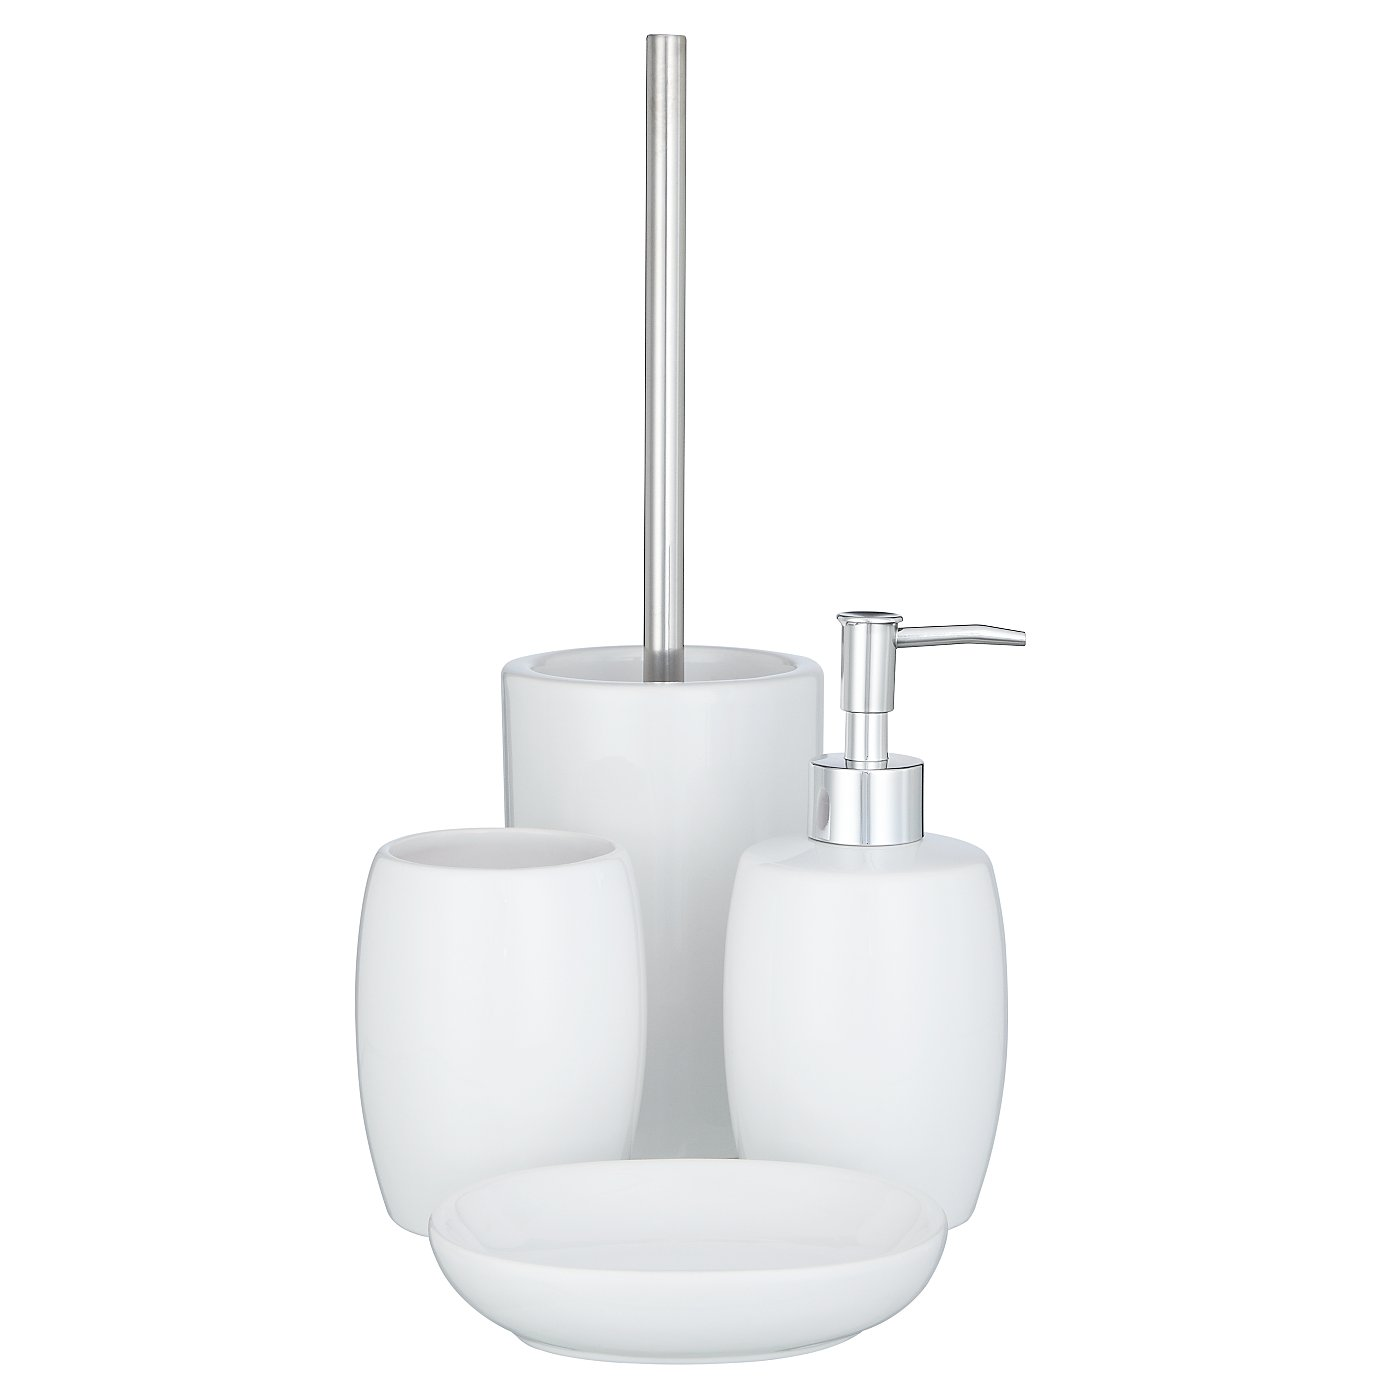 white ceramic bath accessories range bathroom accessories - White Bathroom Accessories Ceramic